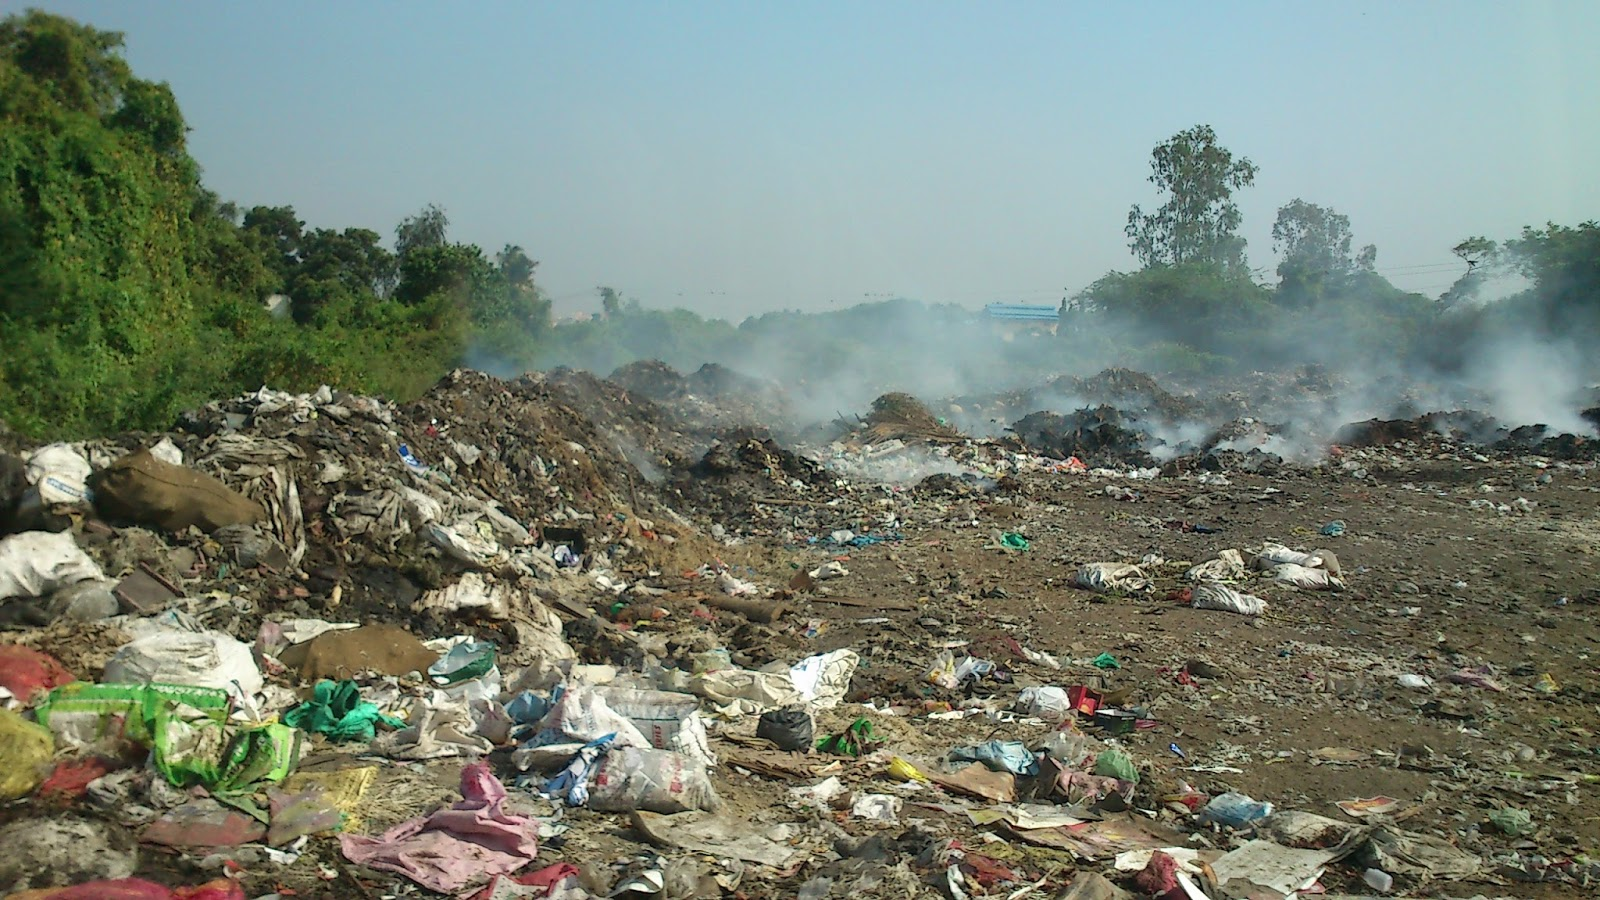 ENVIRONMENTAL ISSUES: POLLUTION